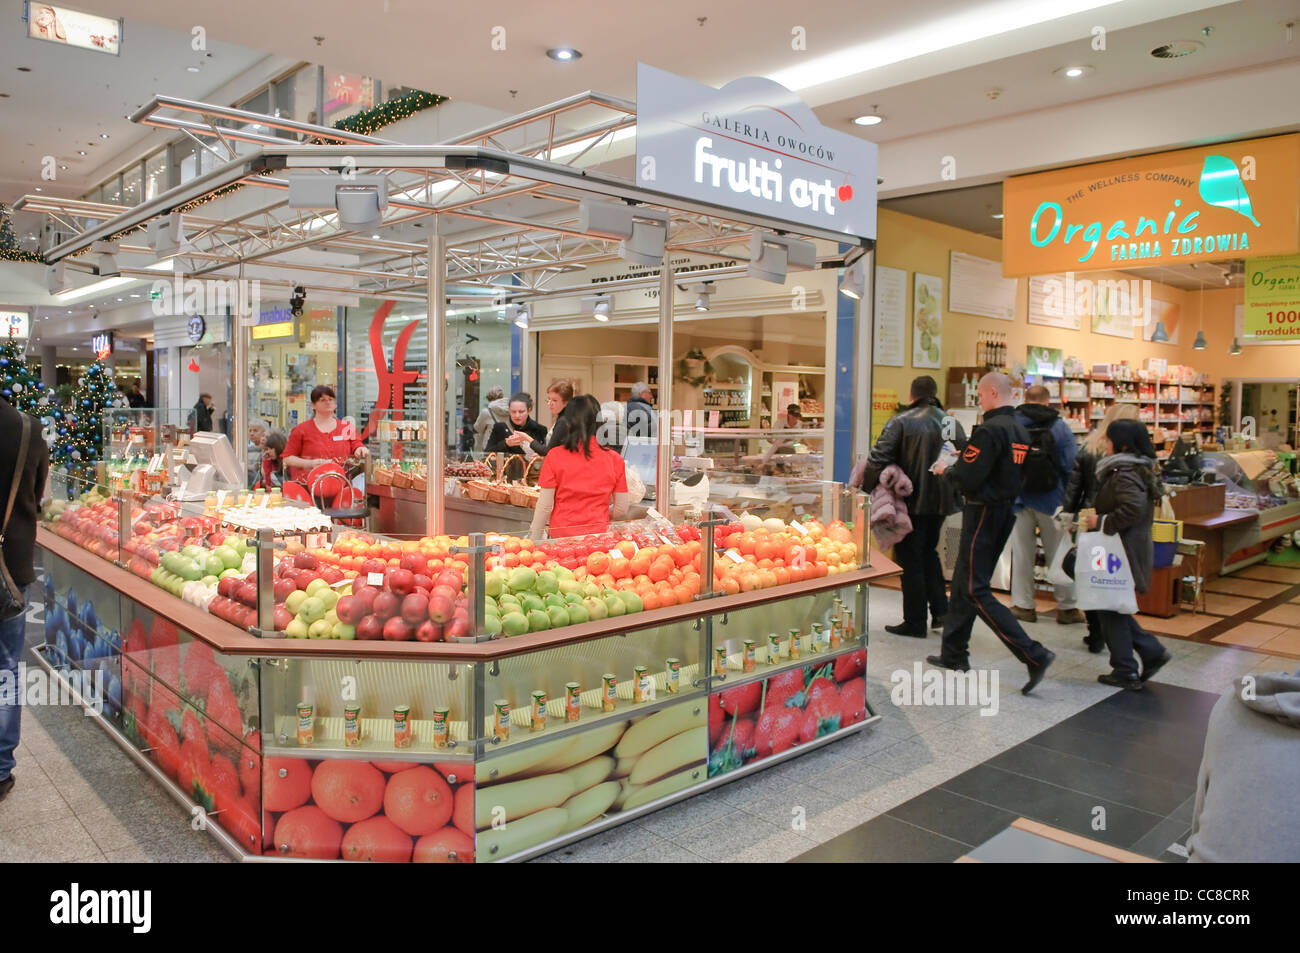 Greengrocer Inside Galeria Krakowska Shopping Centre Krakow Poland Stock Photo Royalty Free